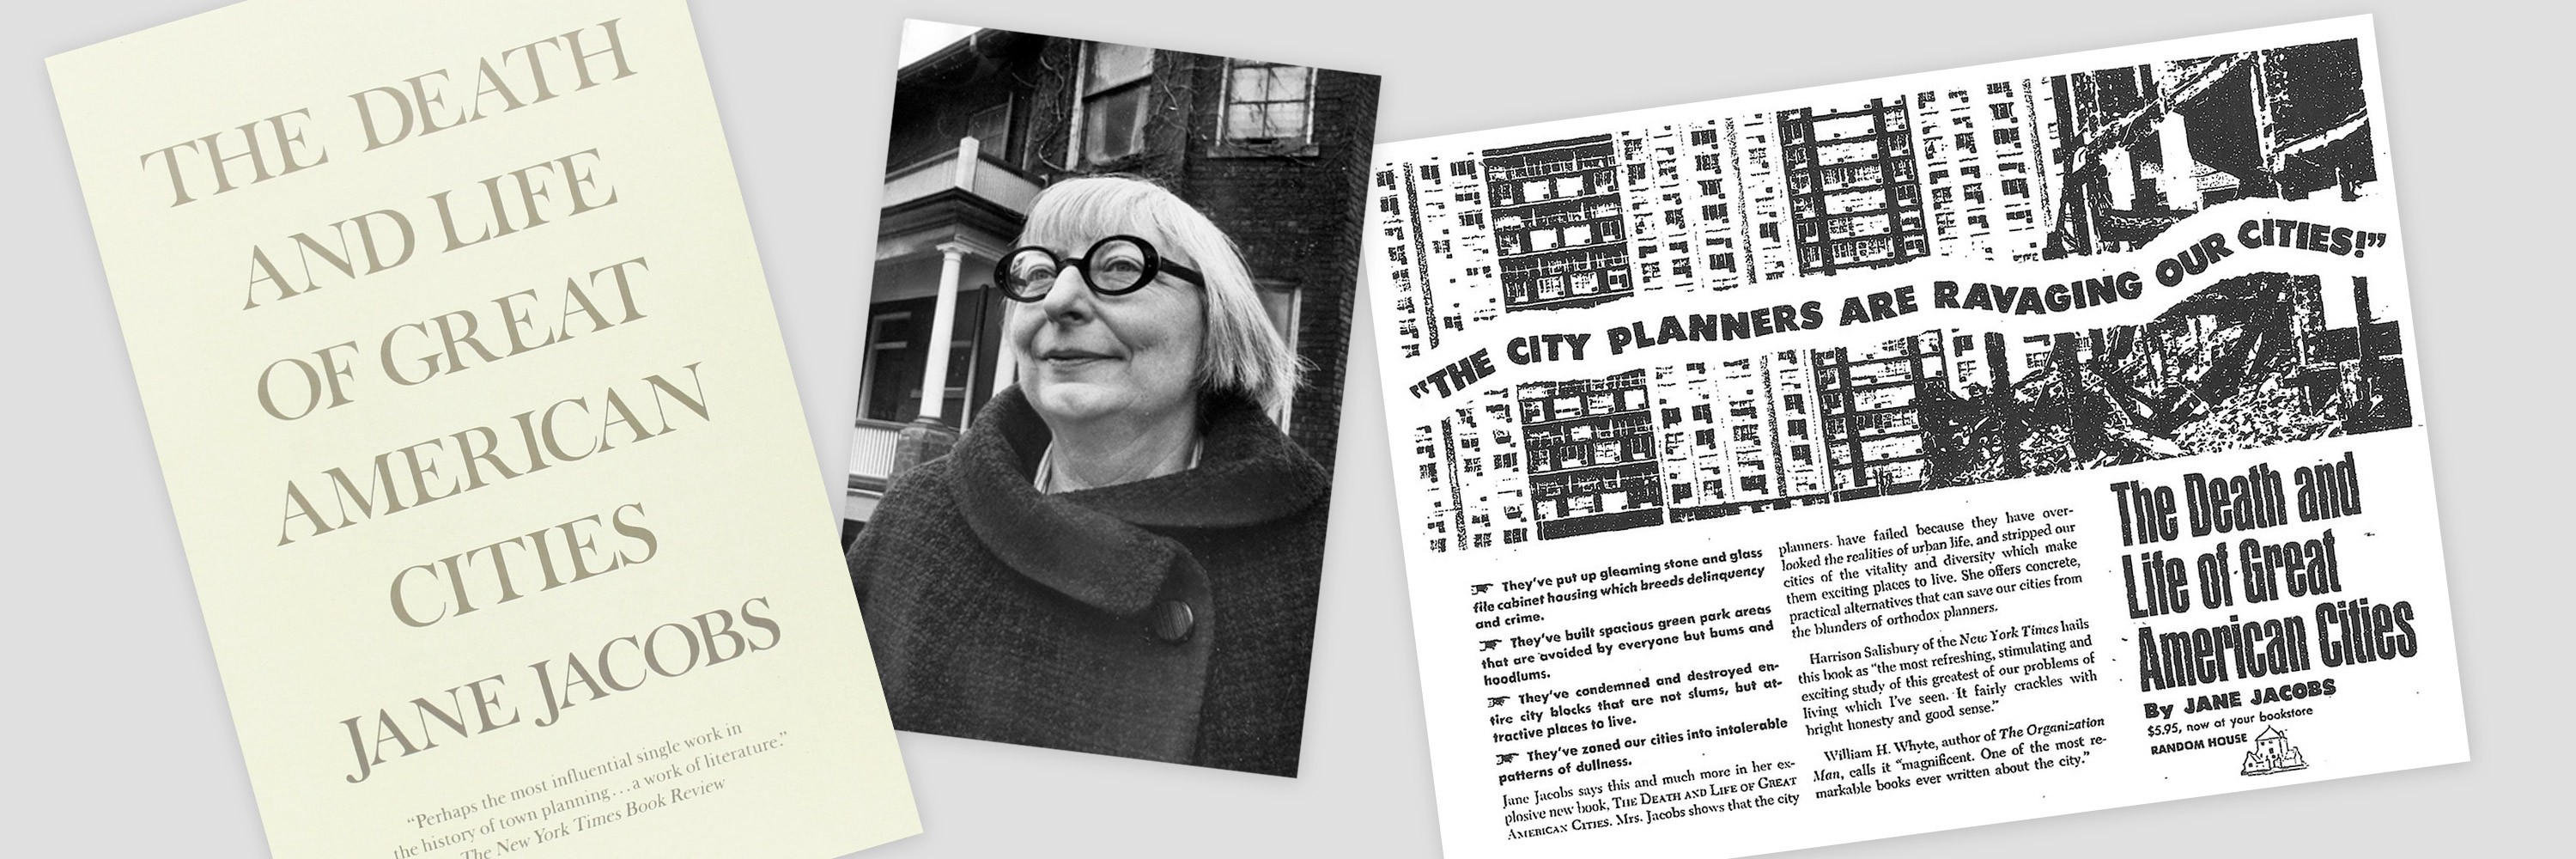 10 Book recommendations for Urban designers - Sheet1